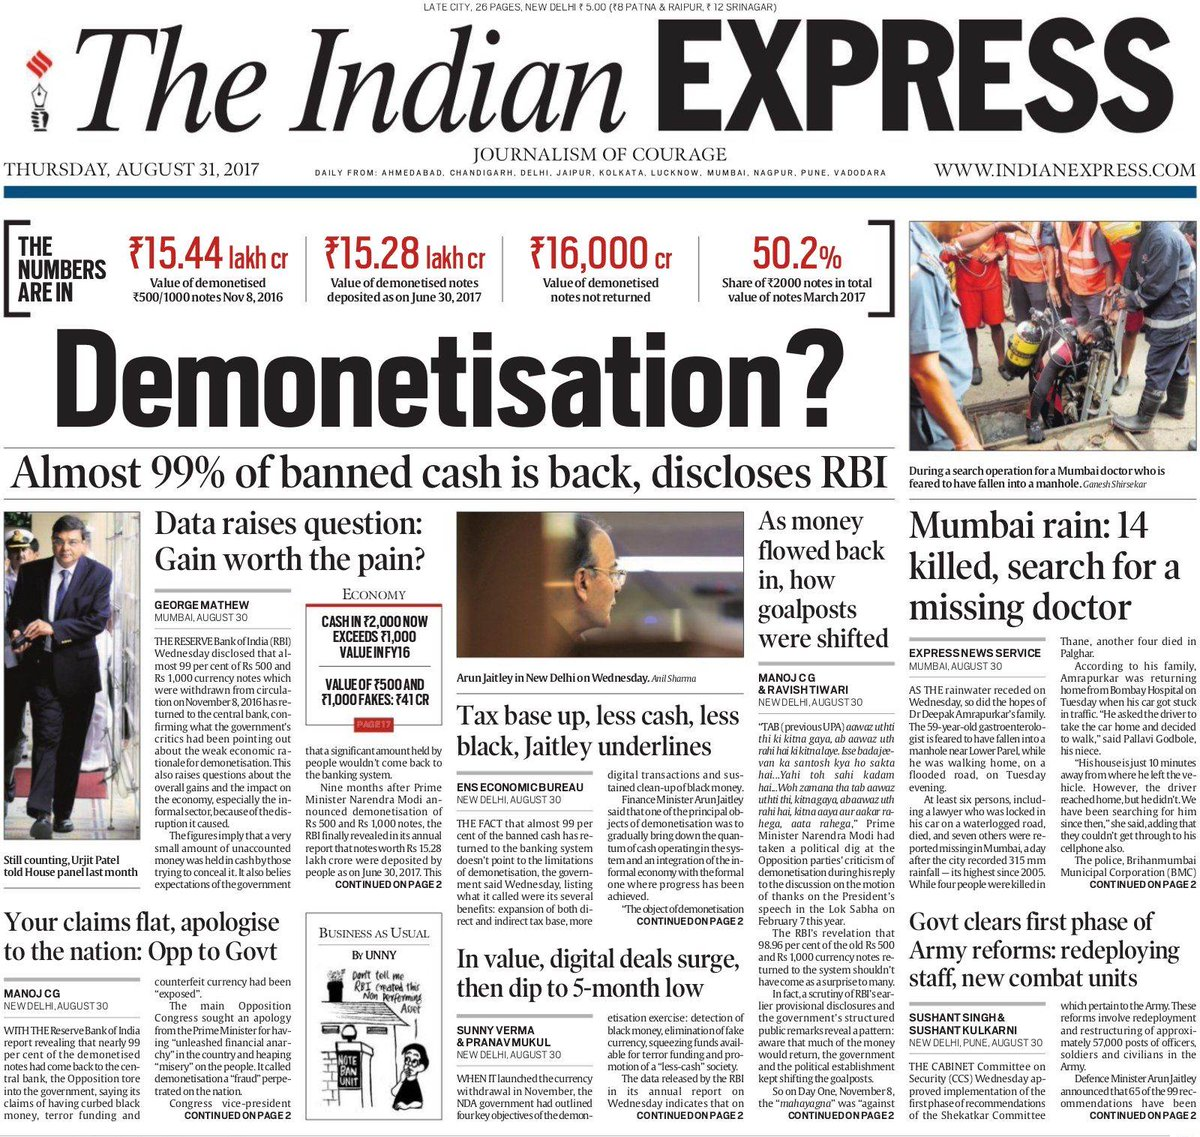 #Thread   Our coverage of the #Demonetisation data released by @RBI https://t.co/L0D3LFKXly